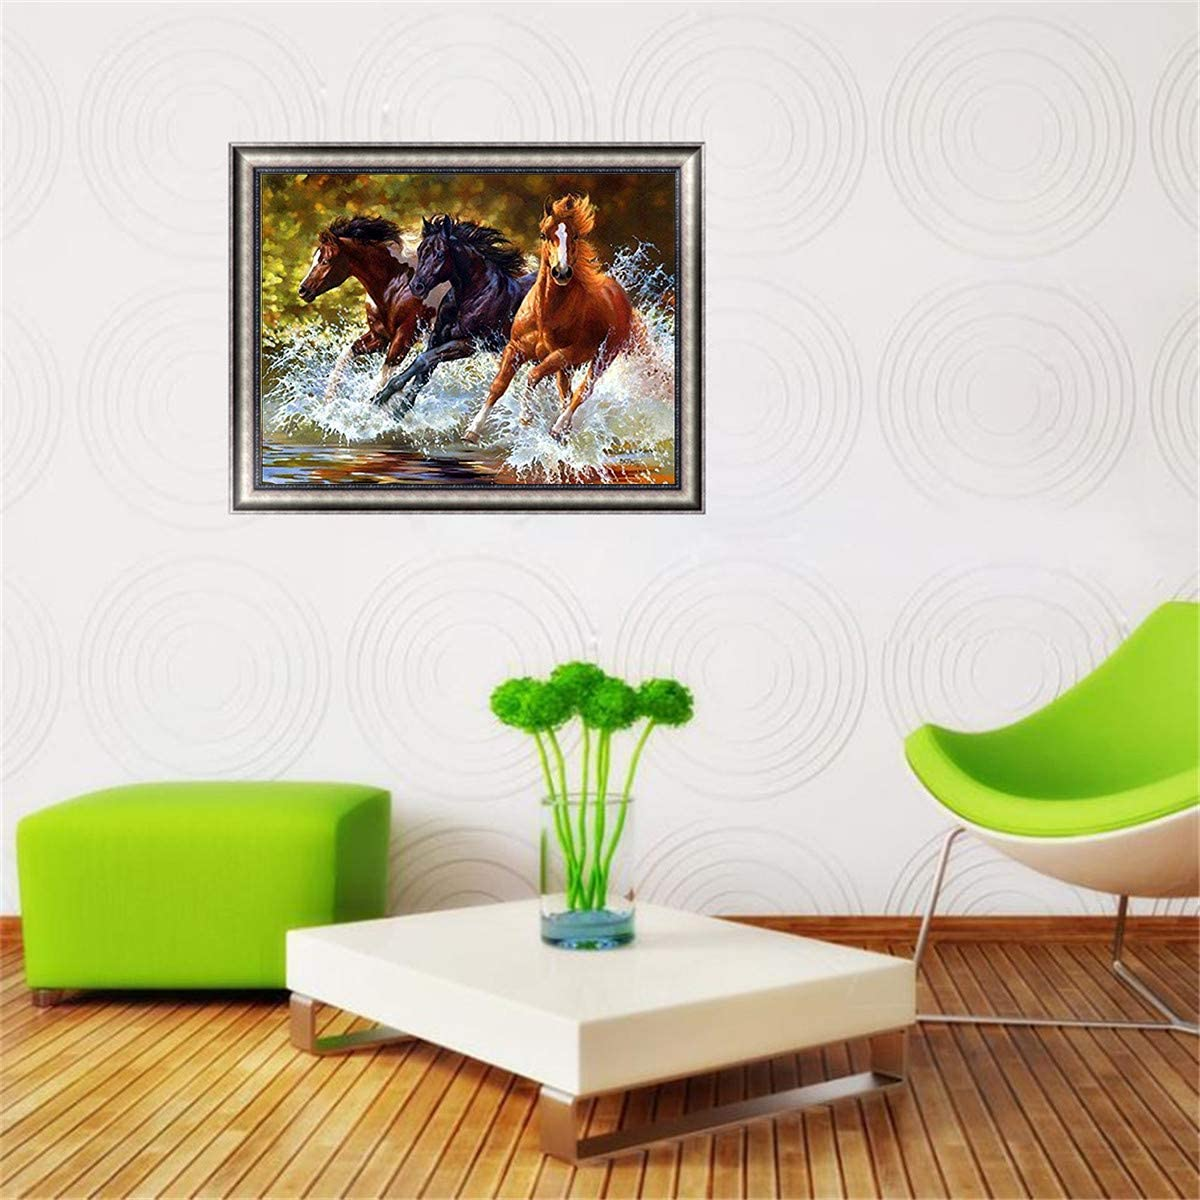 Embroidery Paint with Diamonds Wall Sticker for Home Decor Running Horses 10x12inch EOBROMD 5D Diamond Painting Full Drill